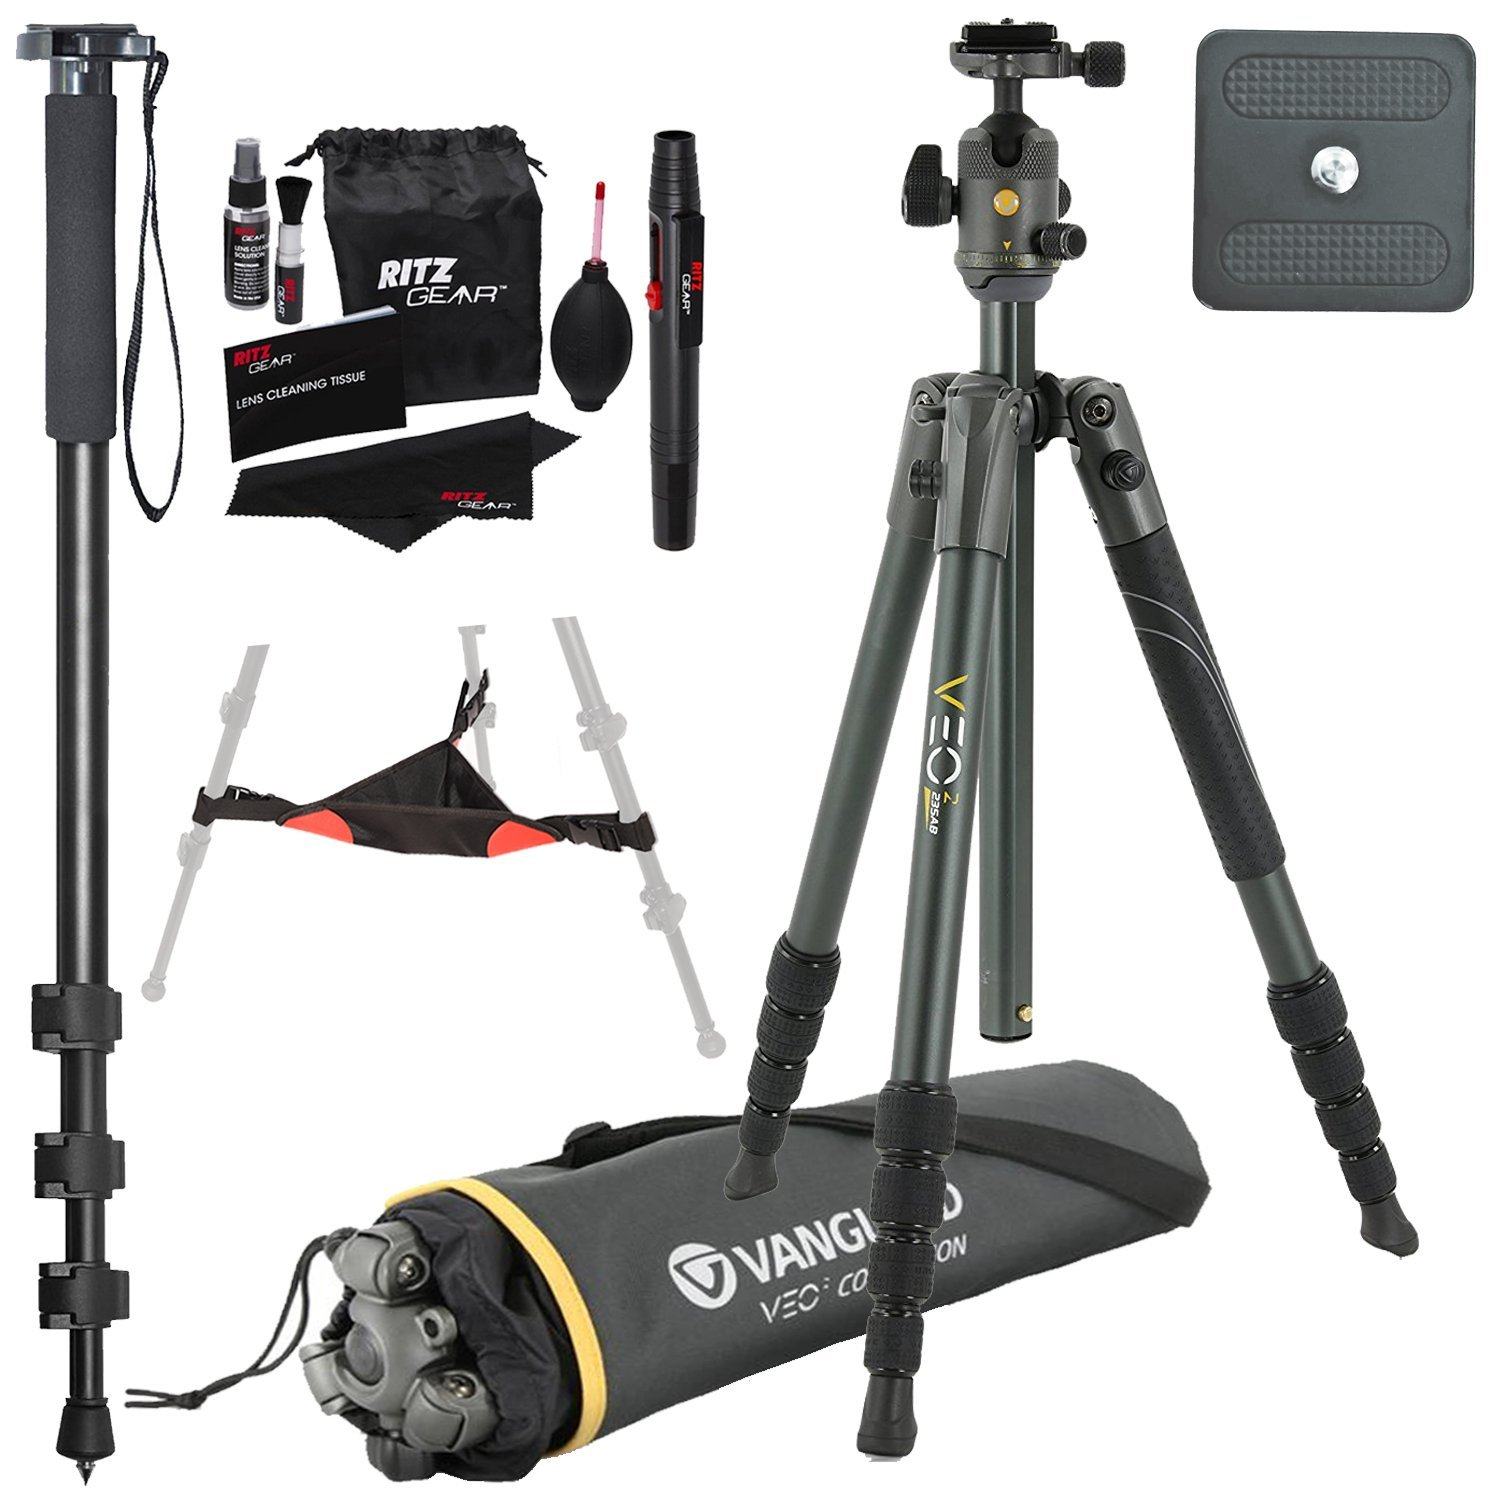 Vanguard VEO 2 235AB Black Aluminum Tripod with VEO 2 BH-50 Ball Head, Ritz Gear Tripod Stone Bag, 72-Inch Monopod with Quick Release and Ritz Gear Cleaning Kit